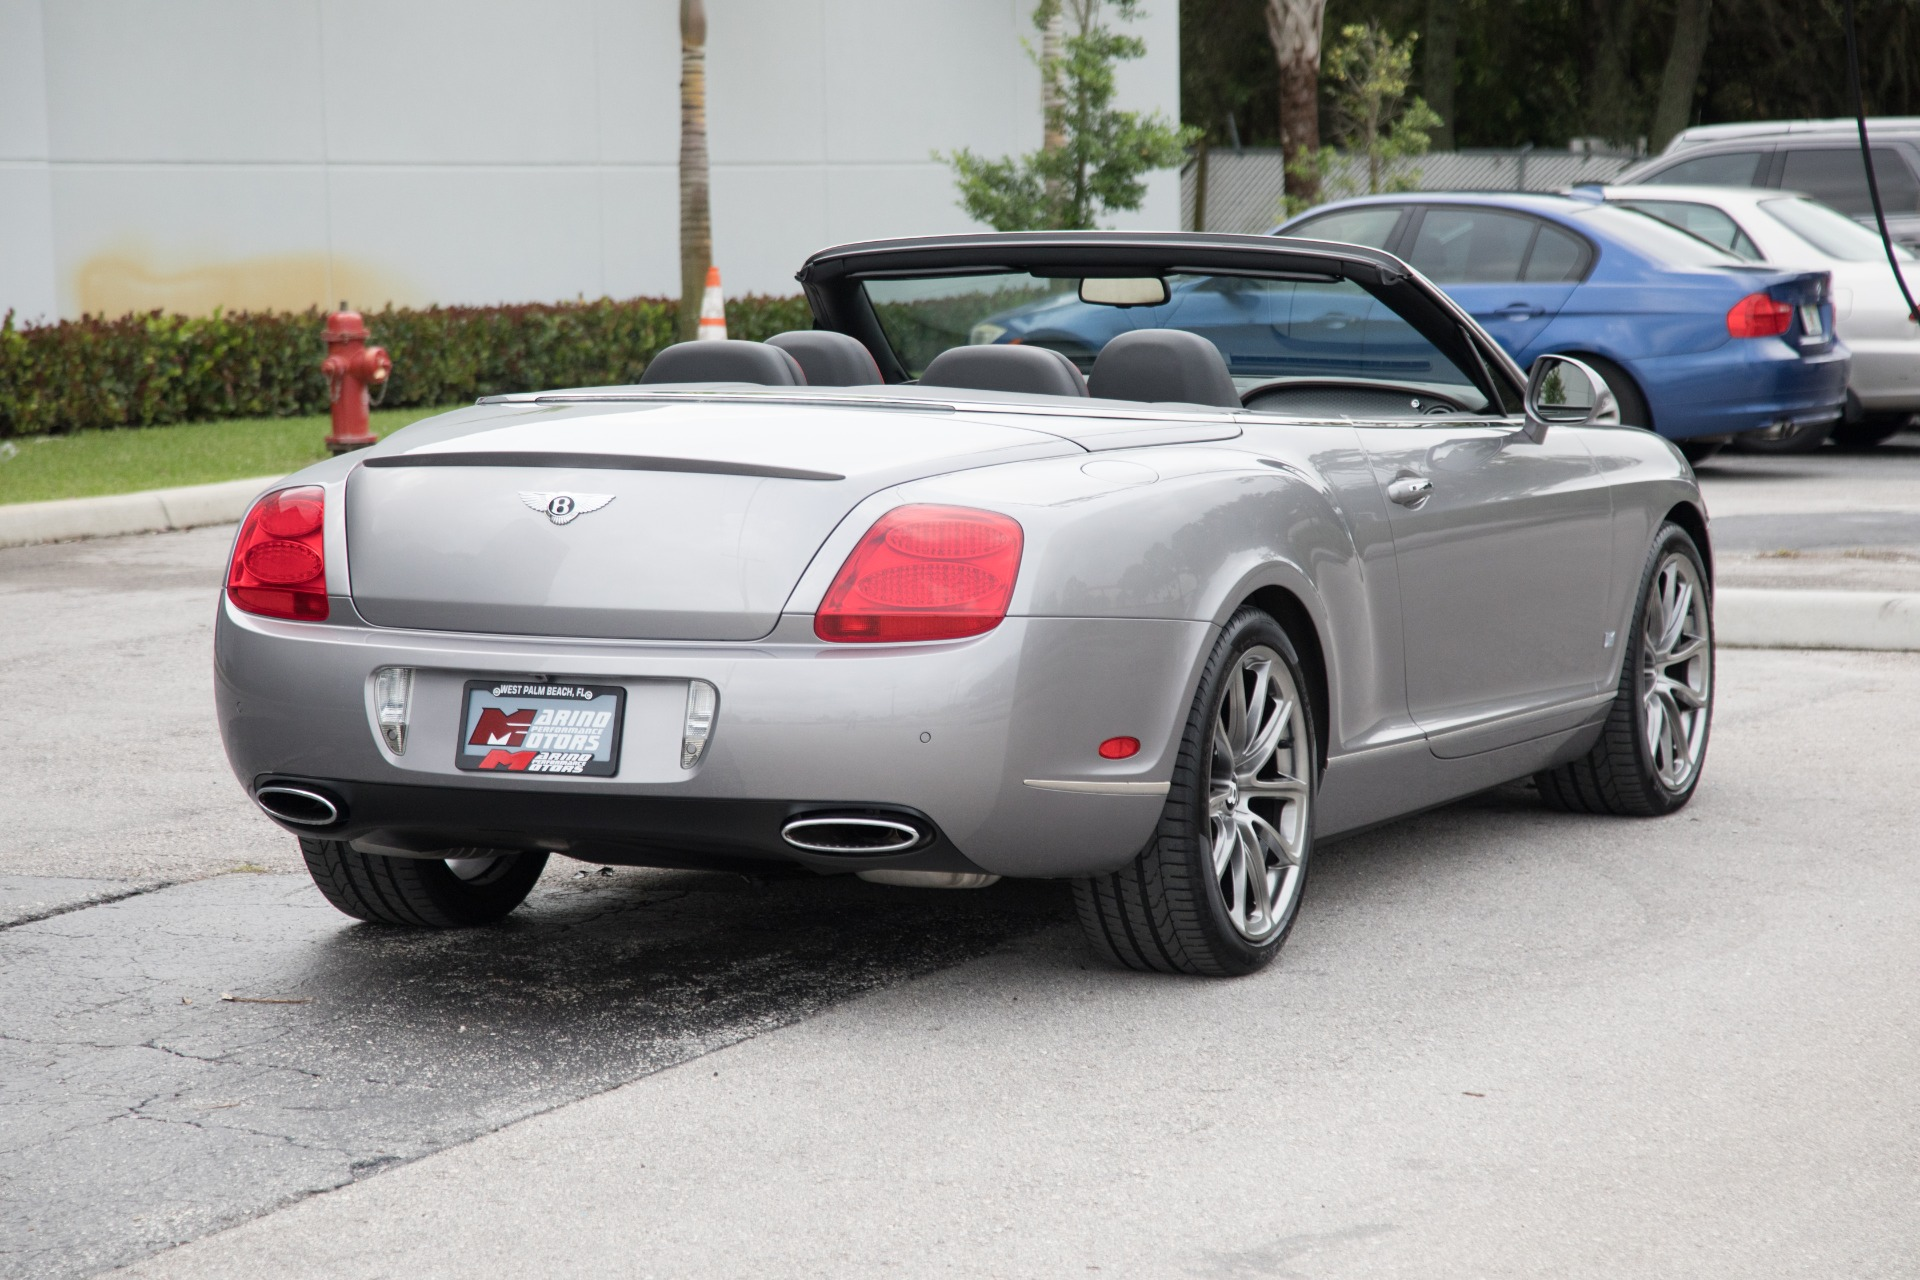 Used-2011-Bentley-Continental-GT-Speed-80-11-Edition